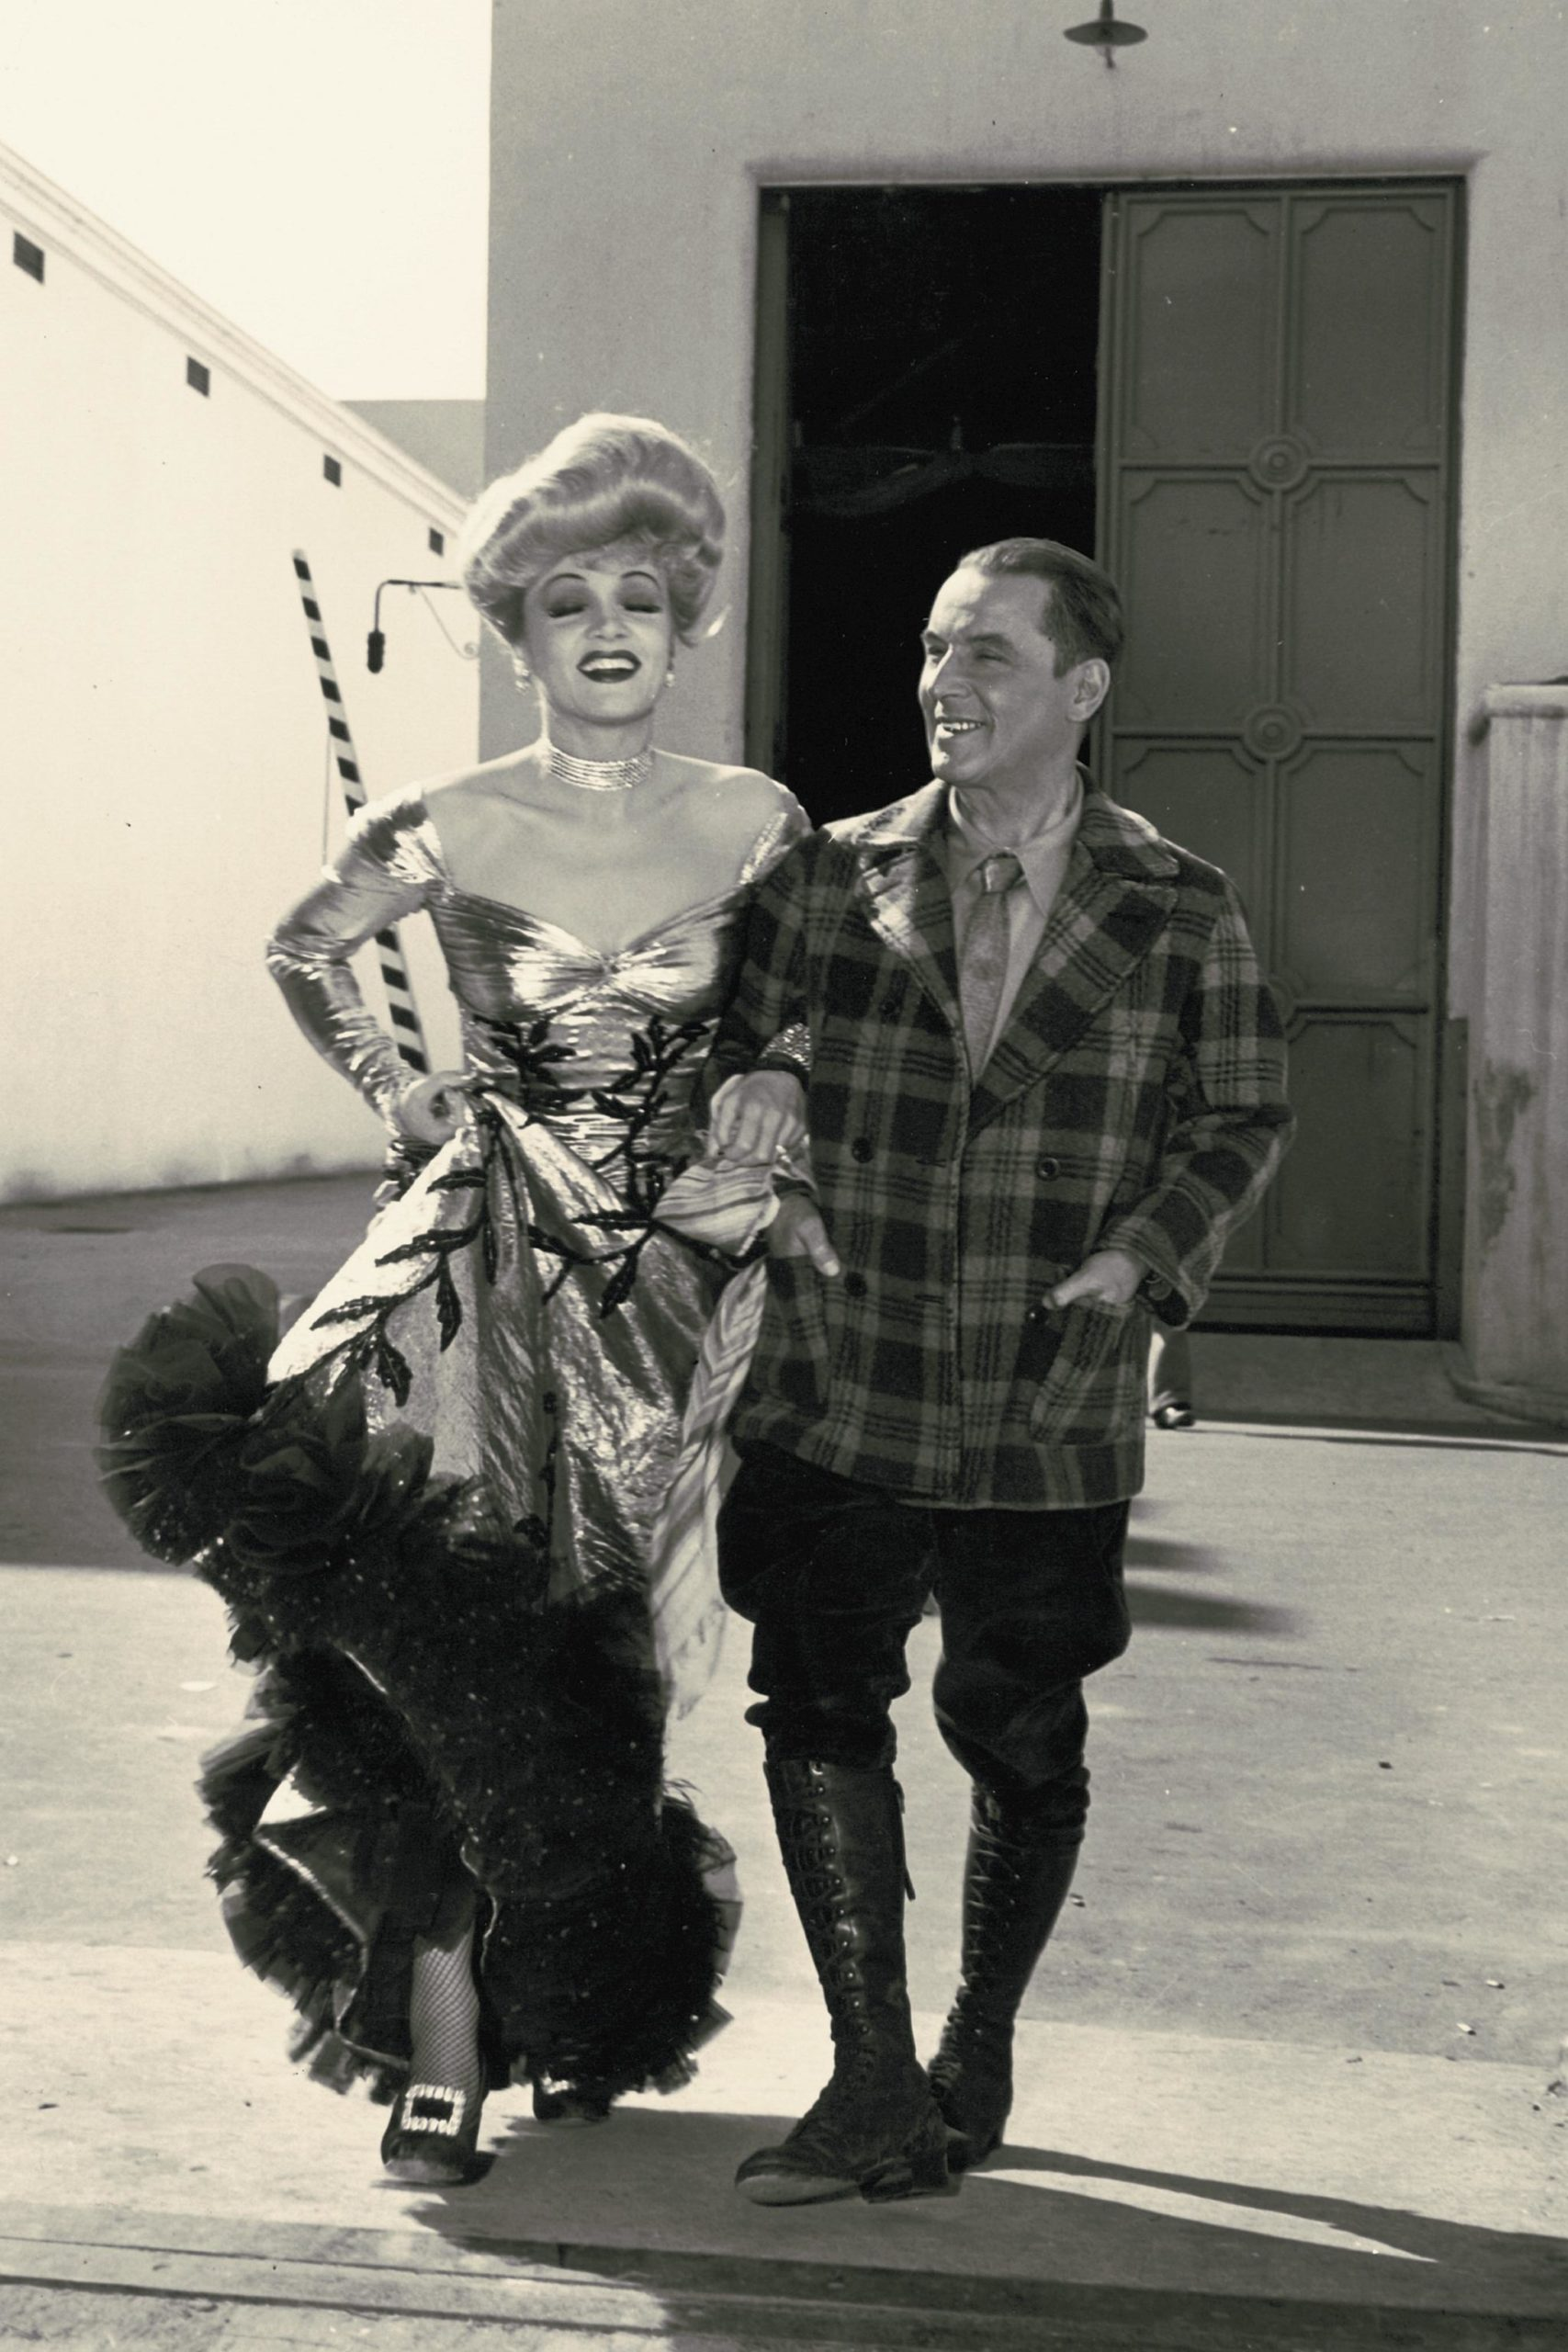 A man in a plaid blazer smiles at a woman in a glamorous dress.